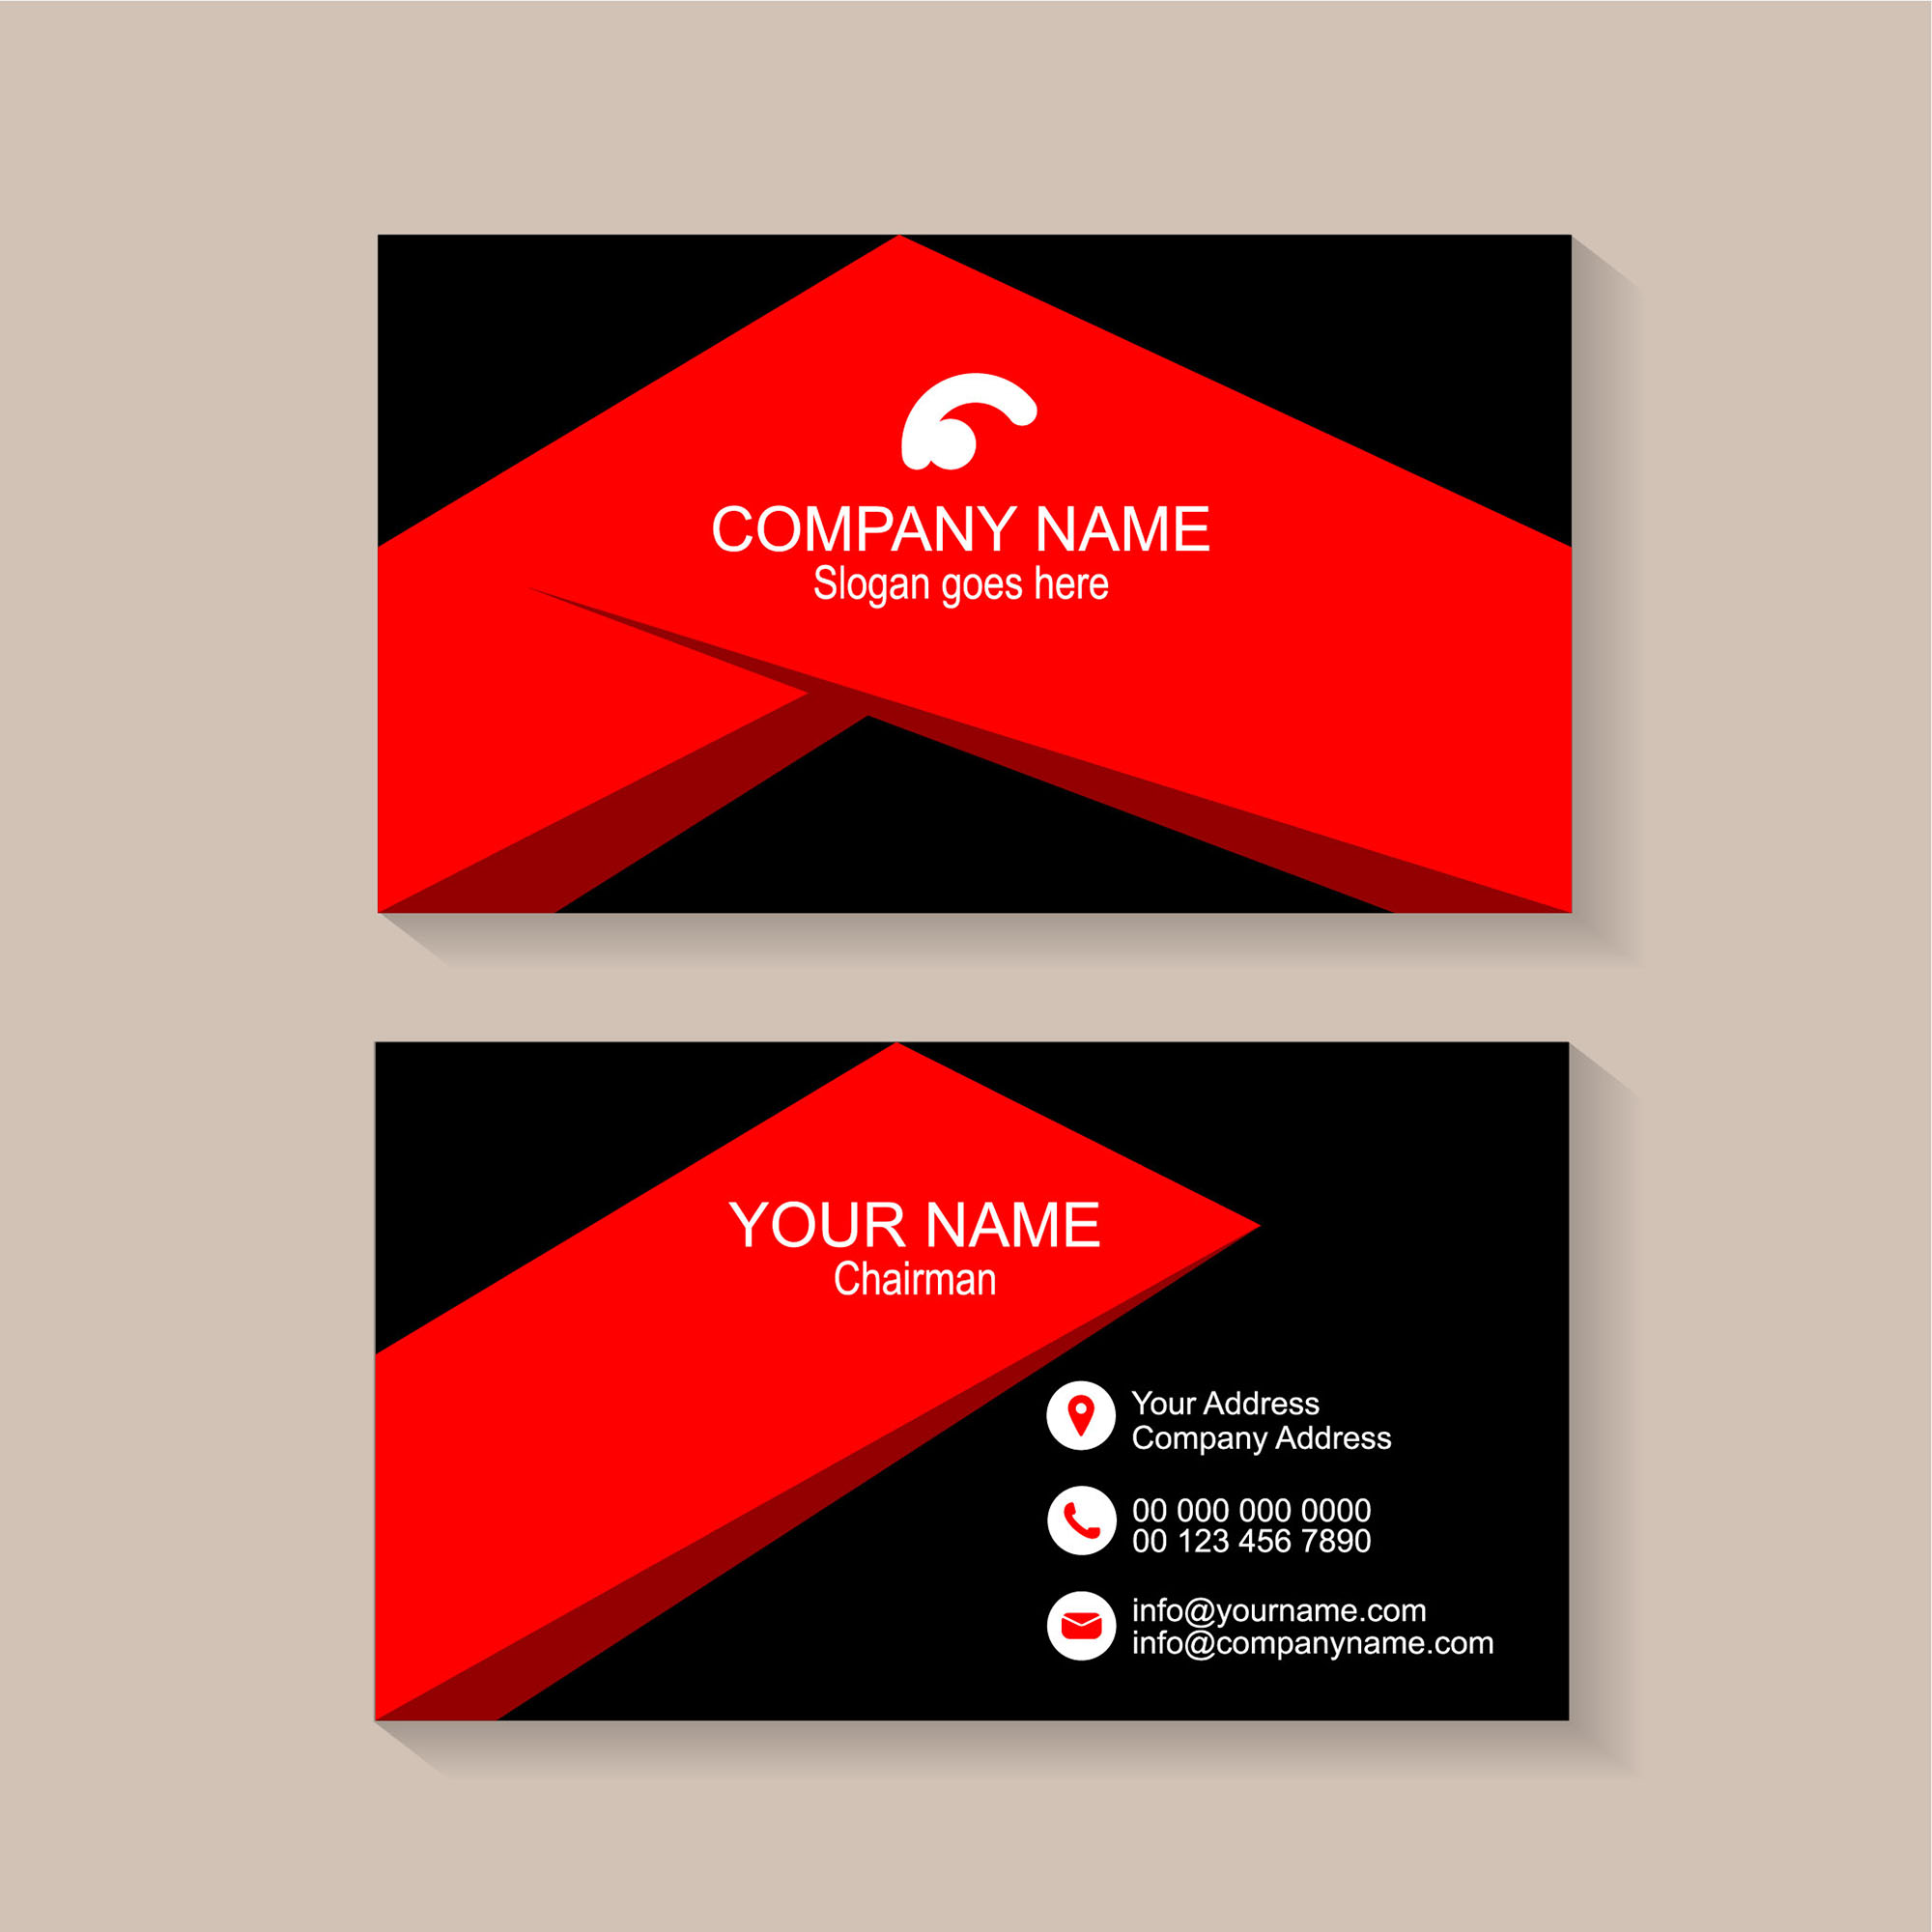 Business card template design free download wisxi business card business cards business card design business card template design templates reheart Choice Image